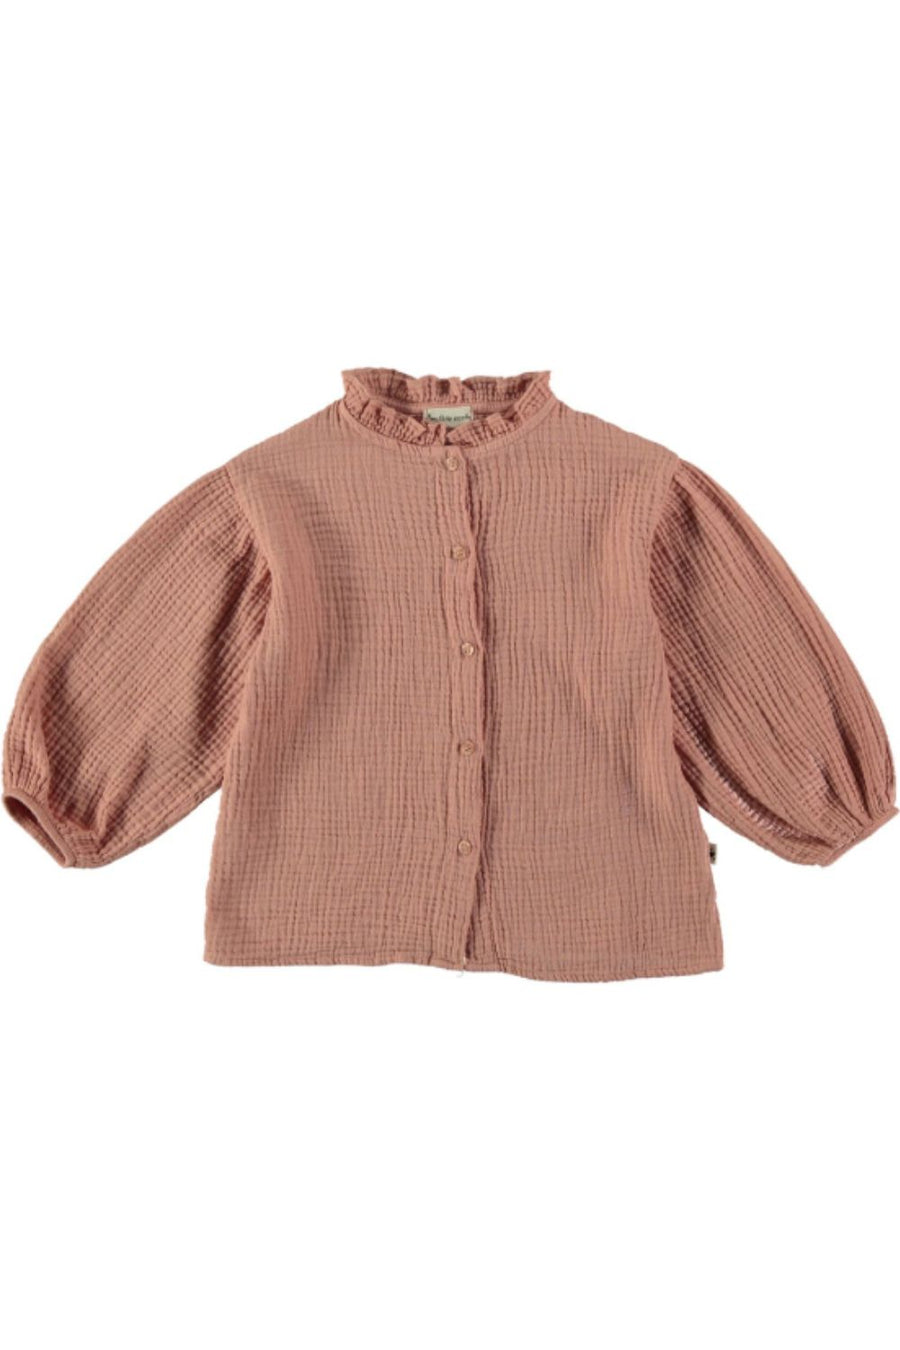 ORGANIC GIRL BLOUSE BUBBLE